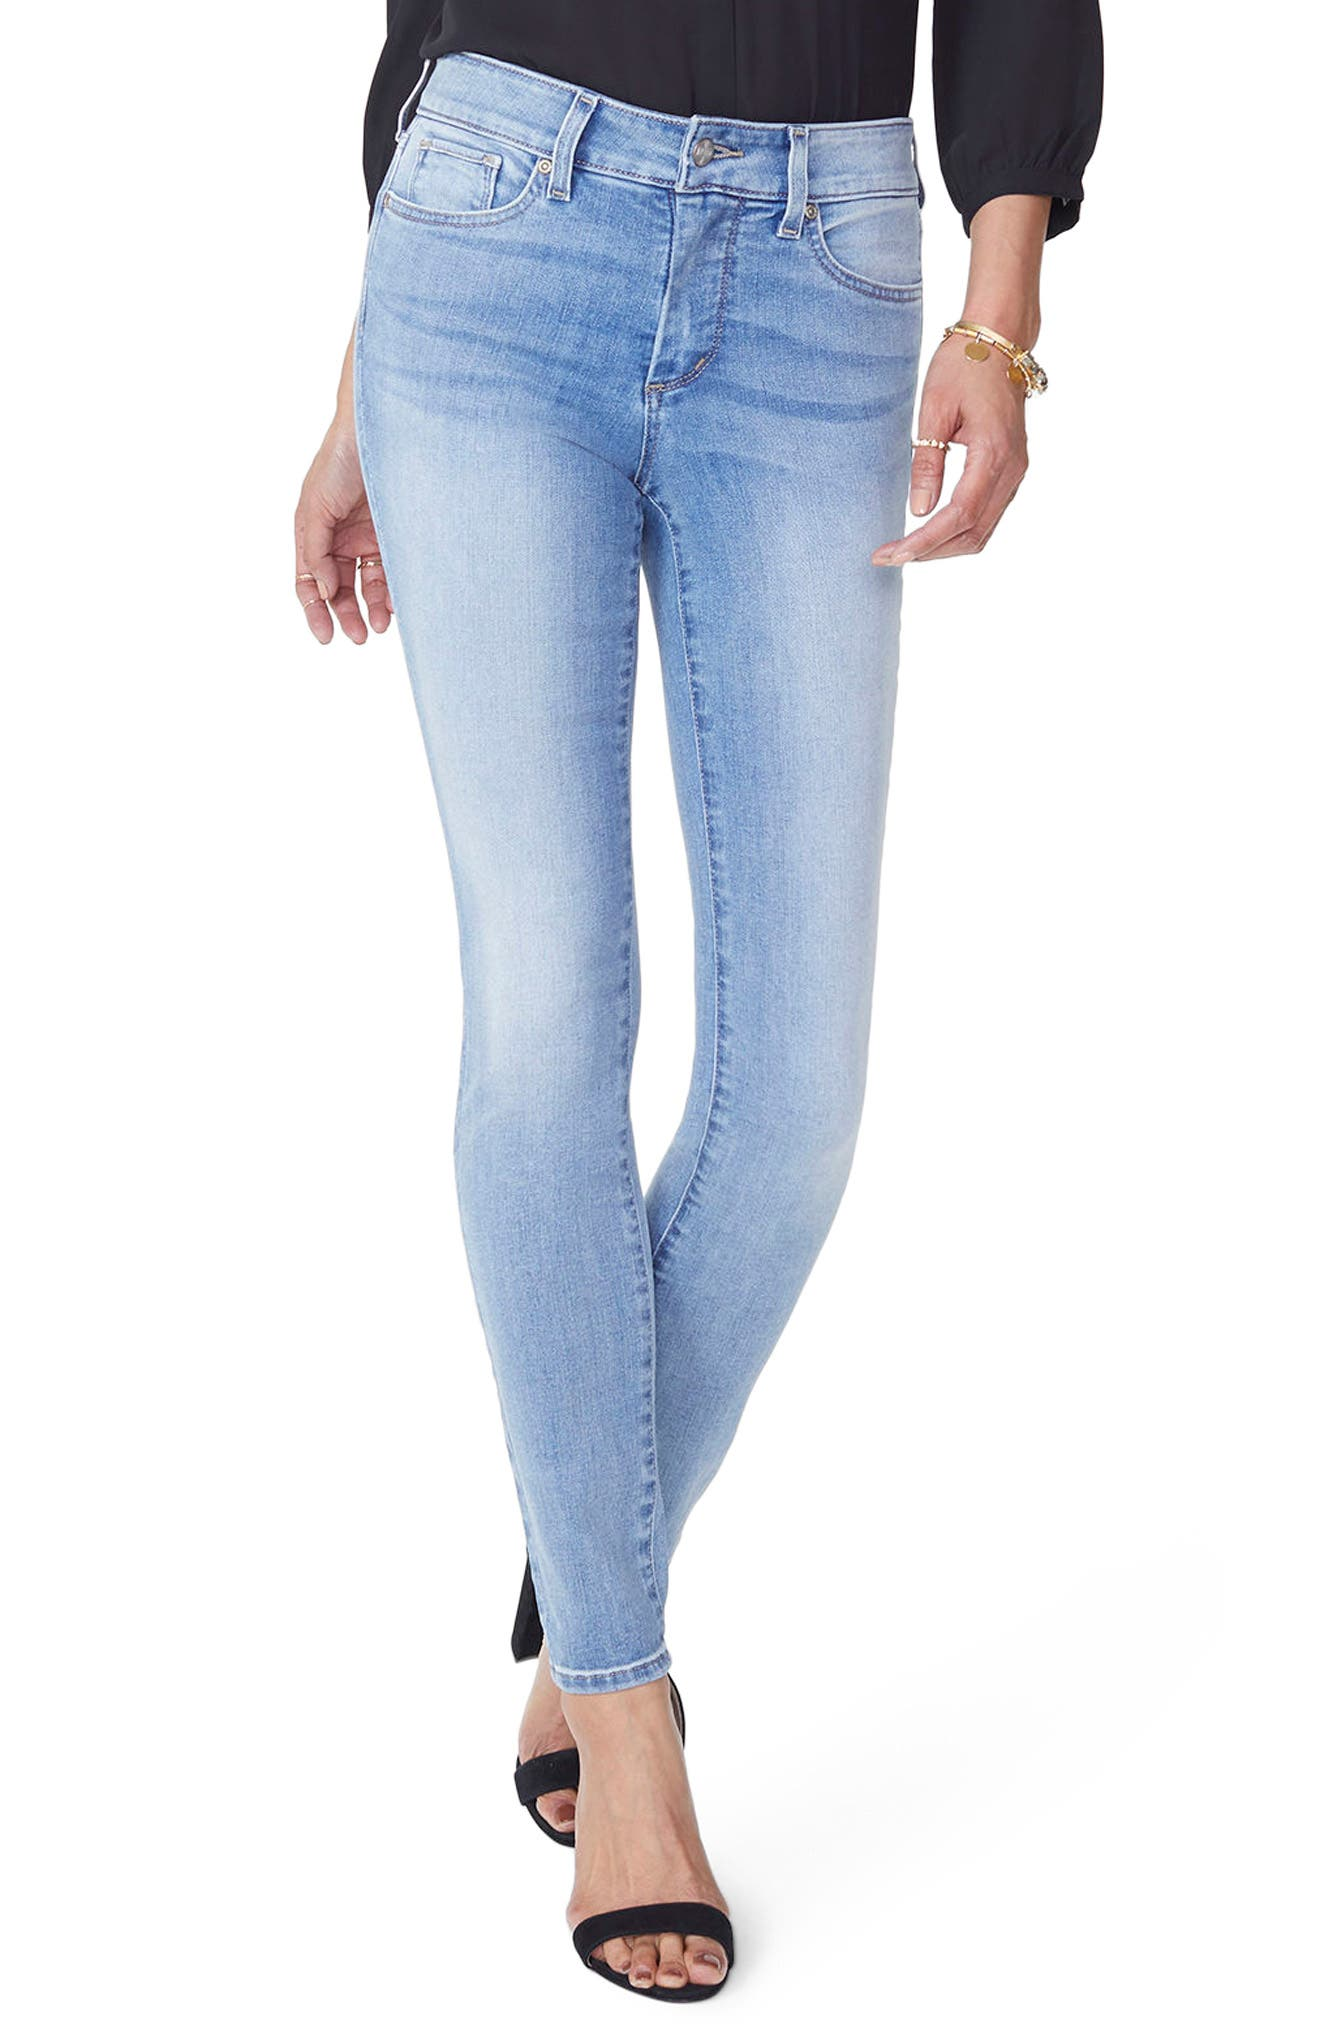 Ami Stretch Skinny Jeans,                         Main,                         color, Dreamstate